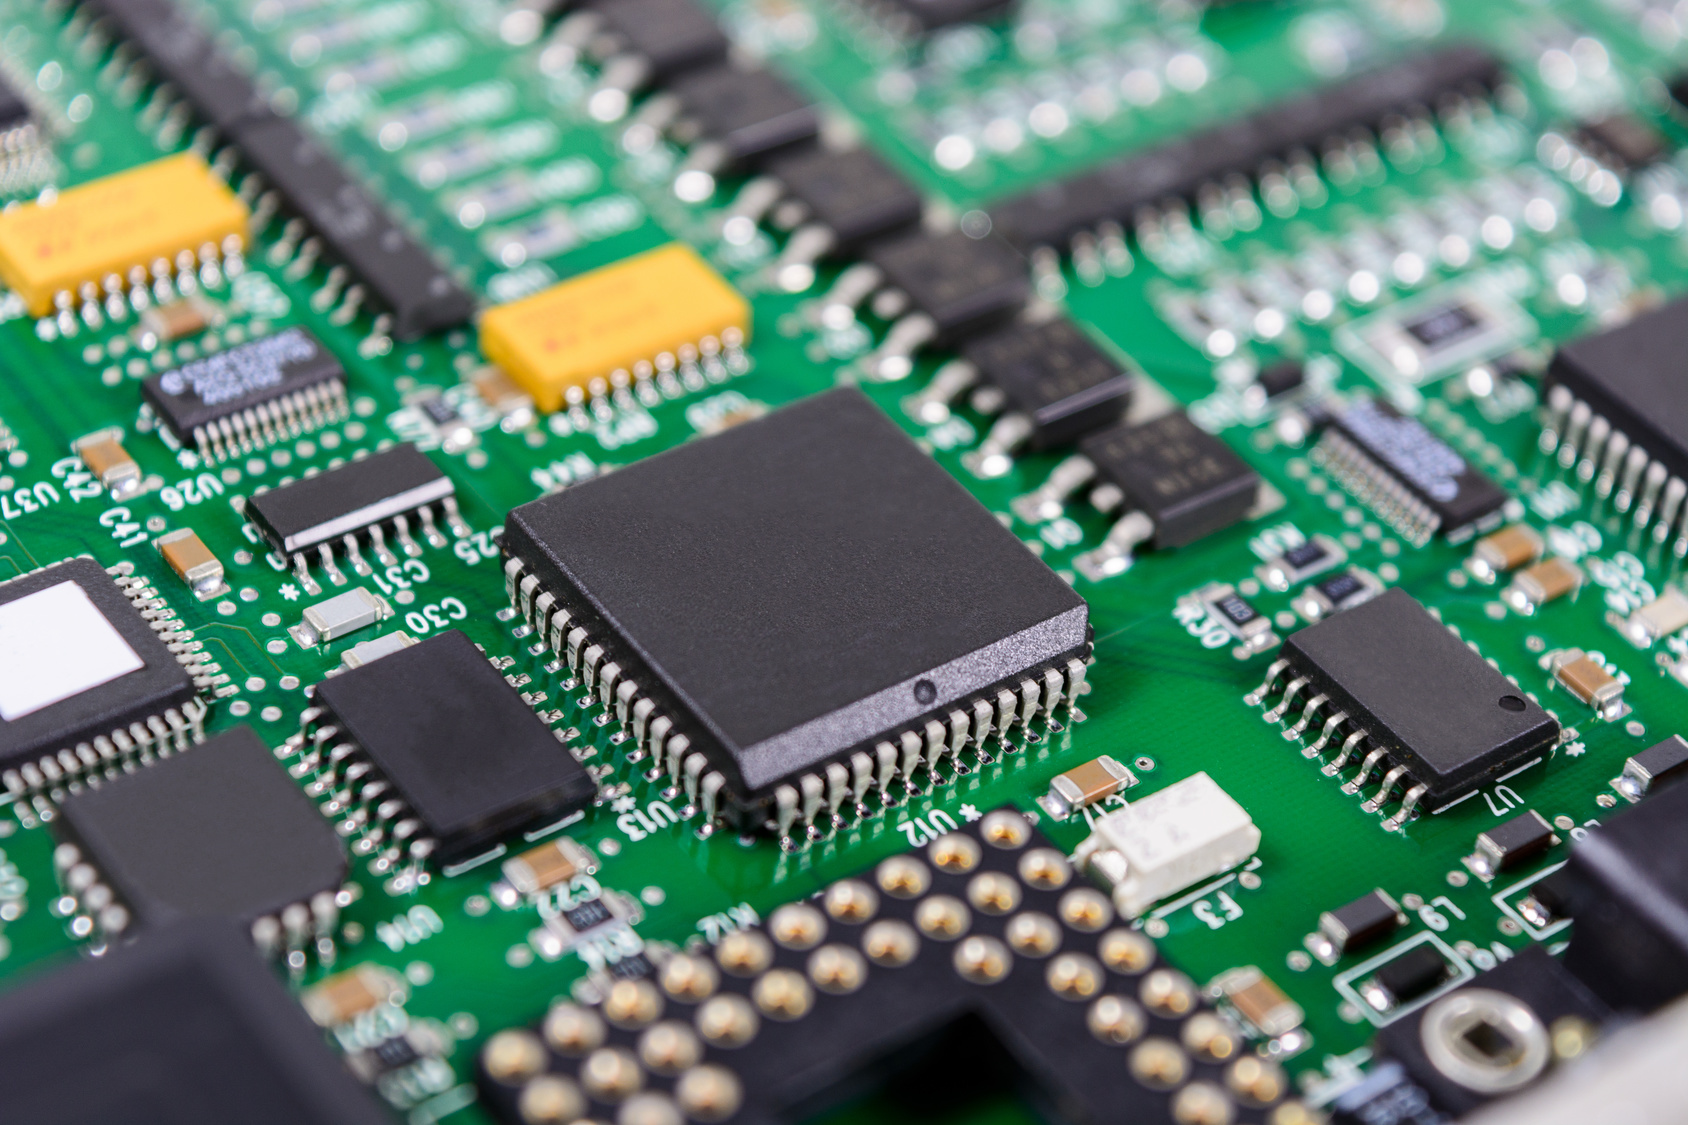 How To Identify Computer Board Parts